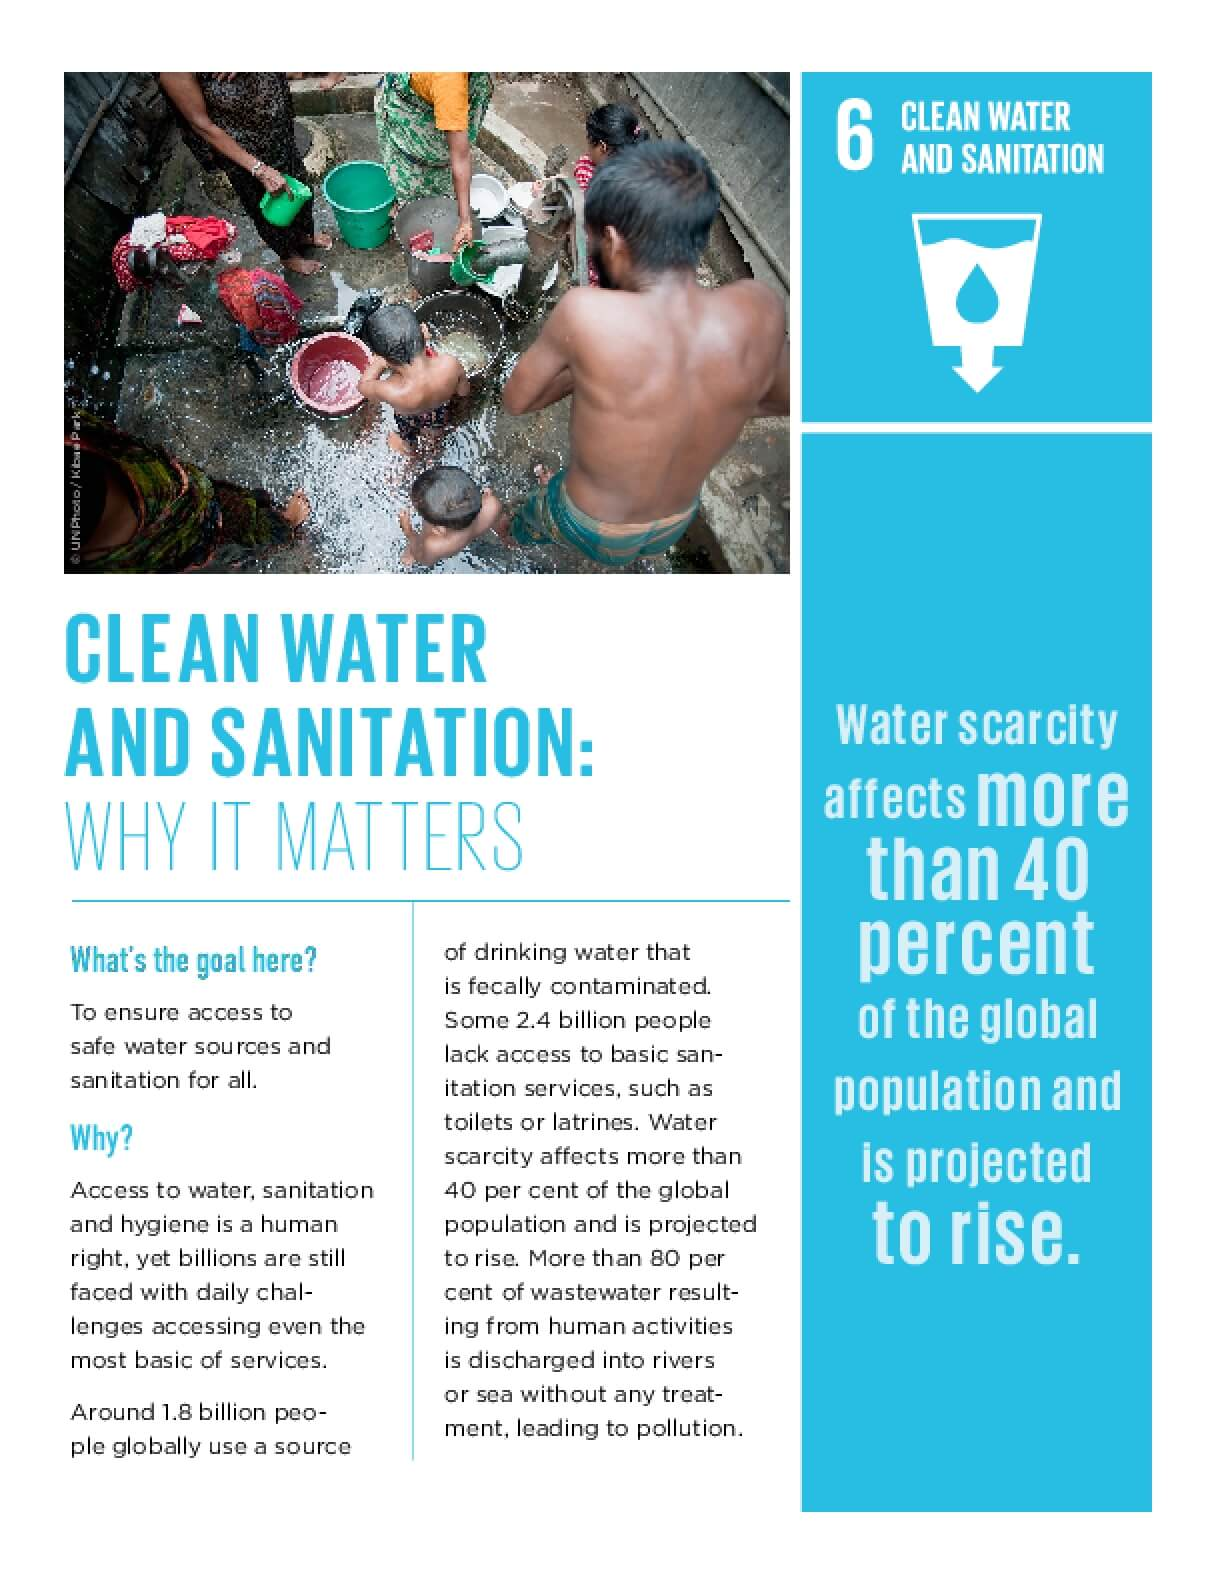 Clean Water and Sanitation: Why It Matters